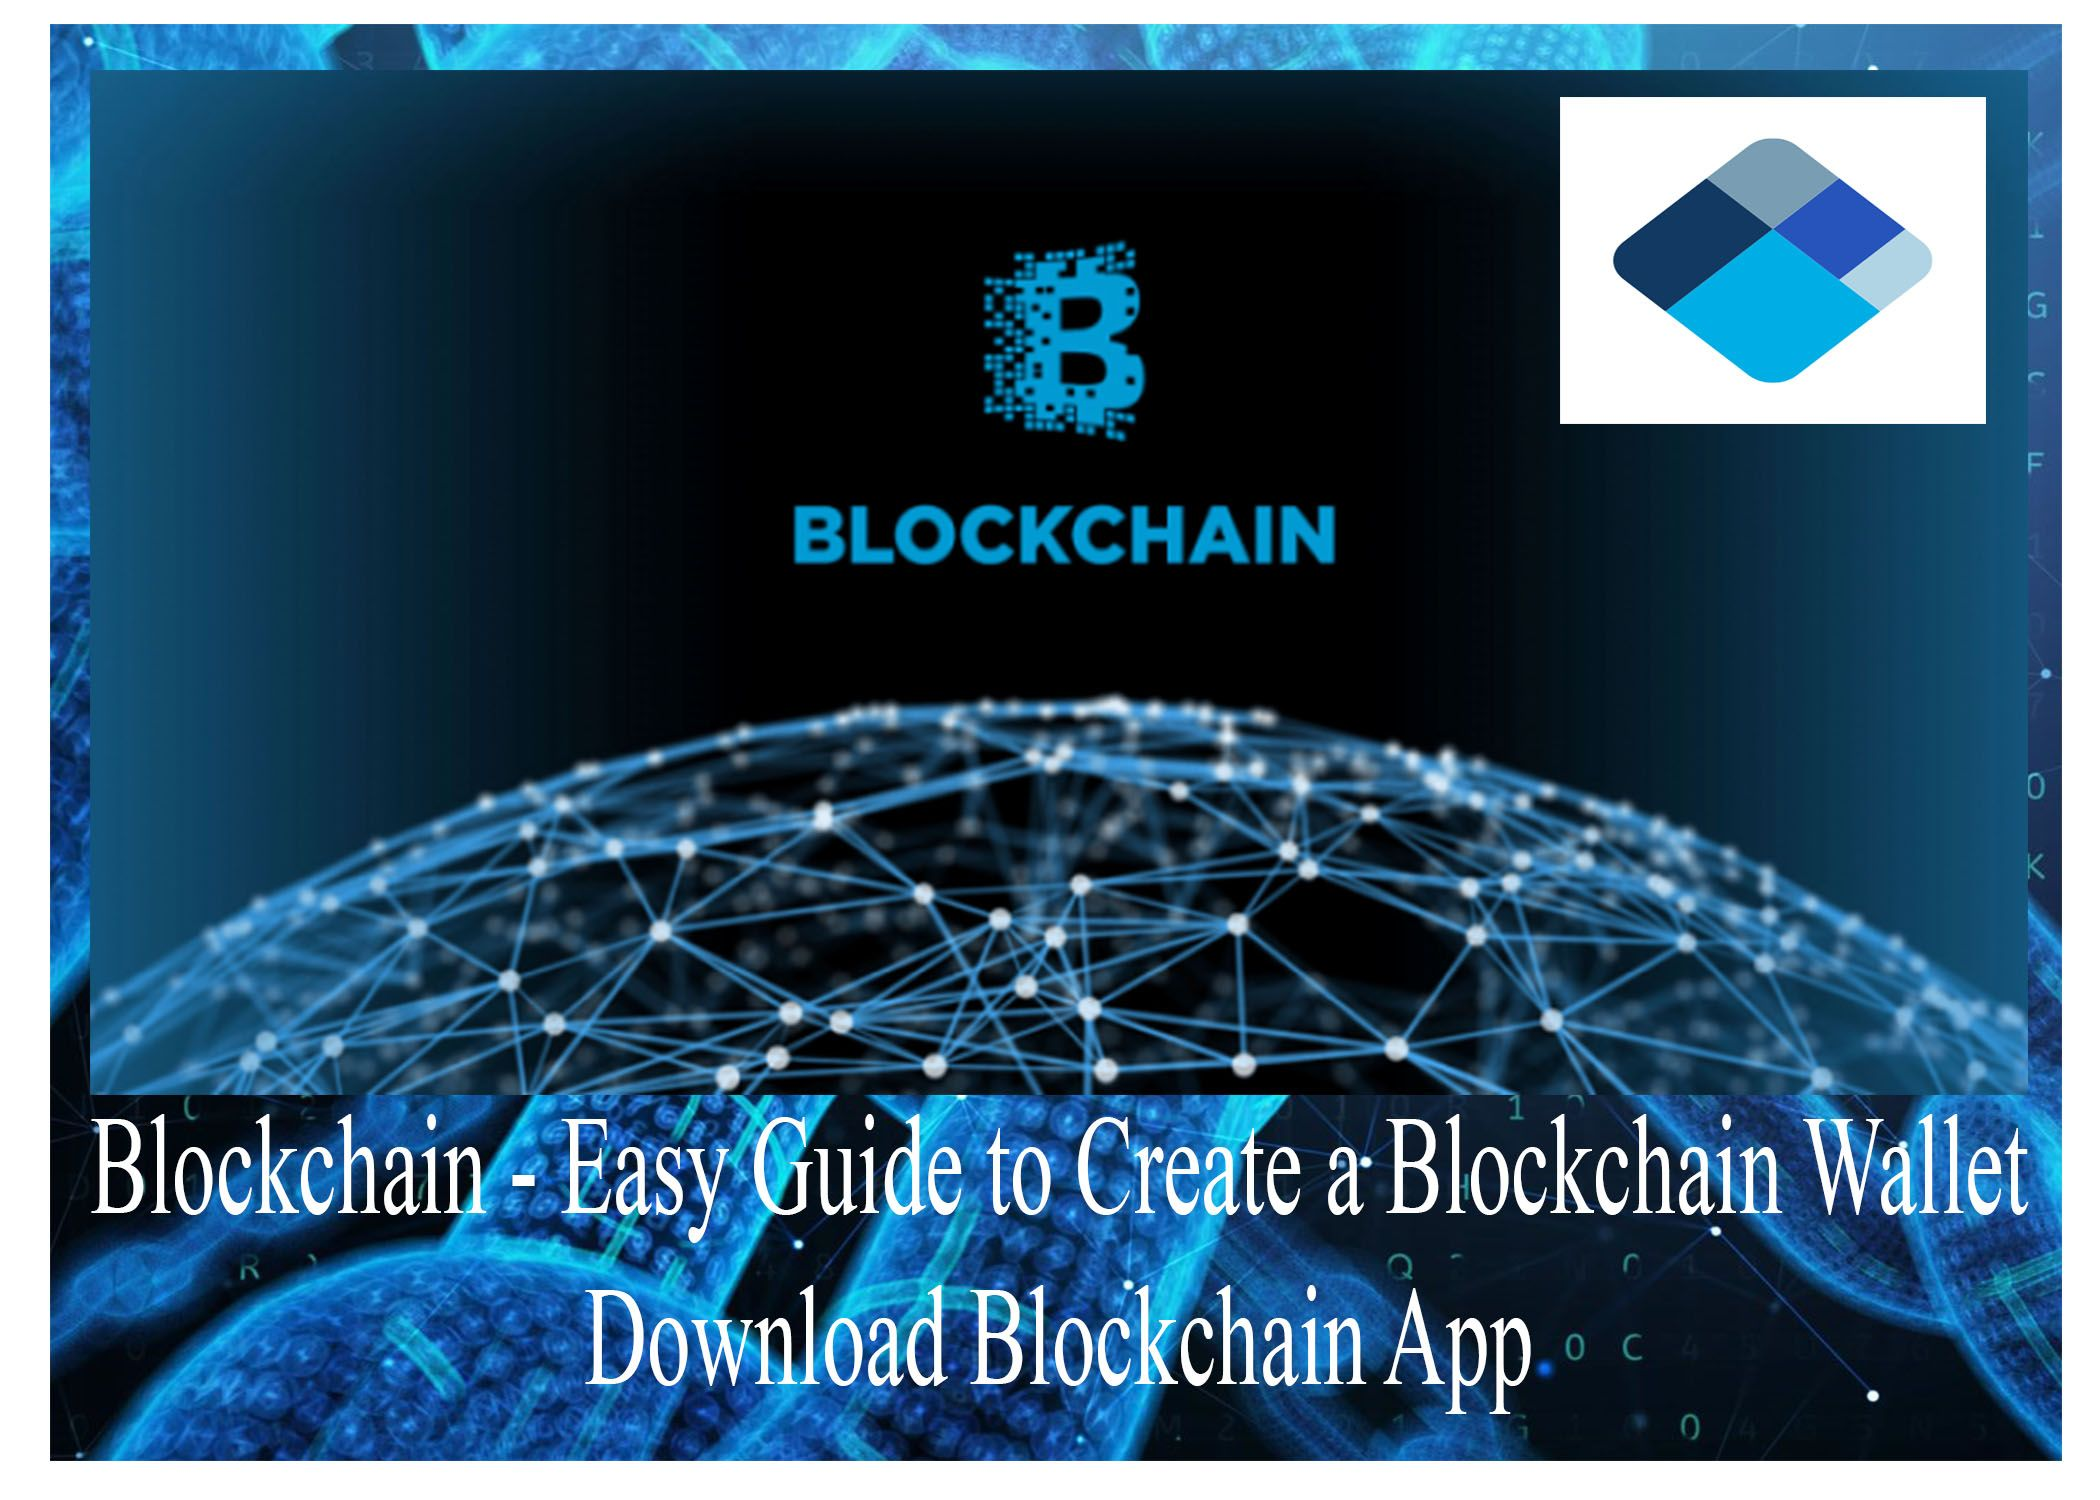 Blockchain Easy Guide to Create a Blockchain Wallet